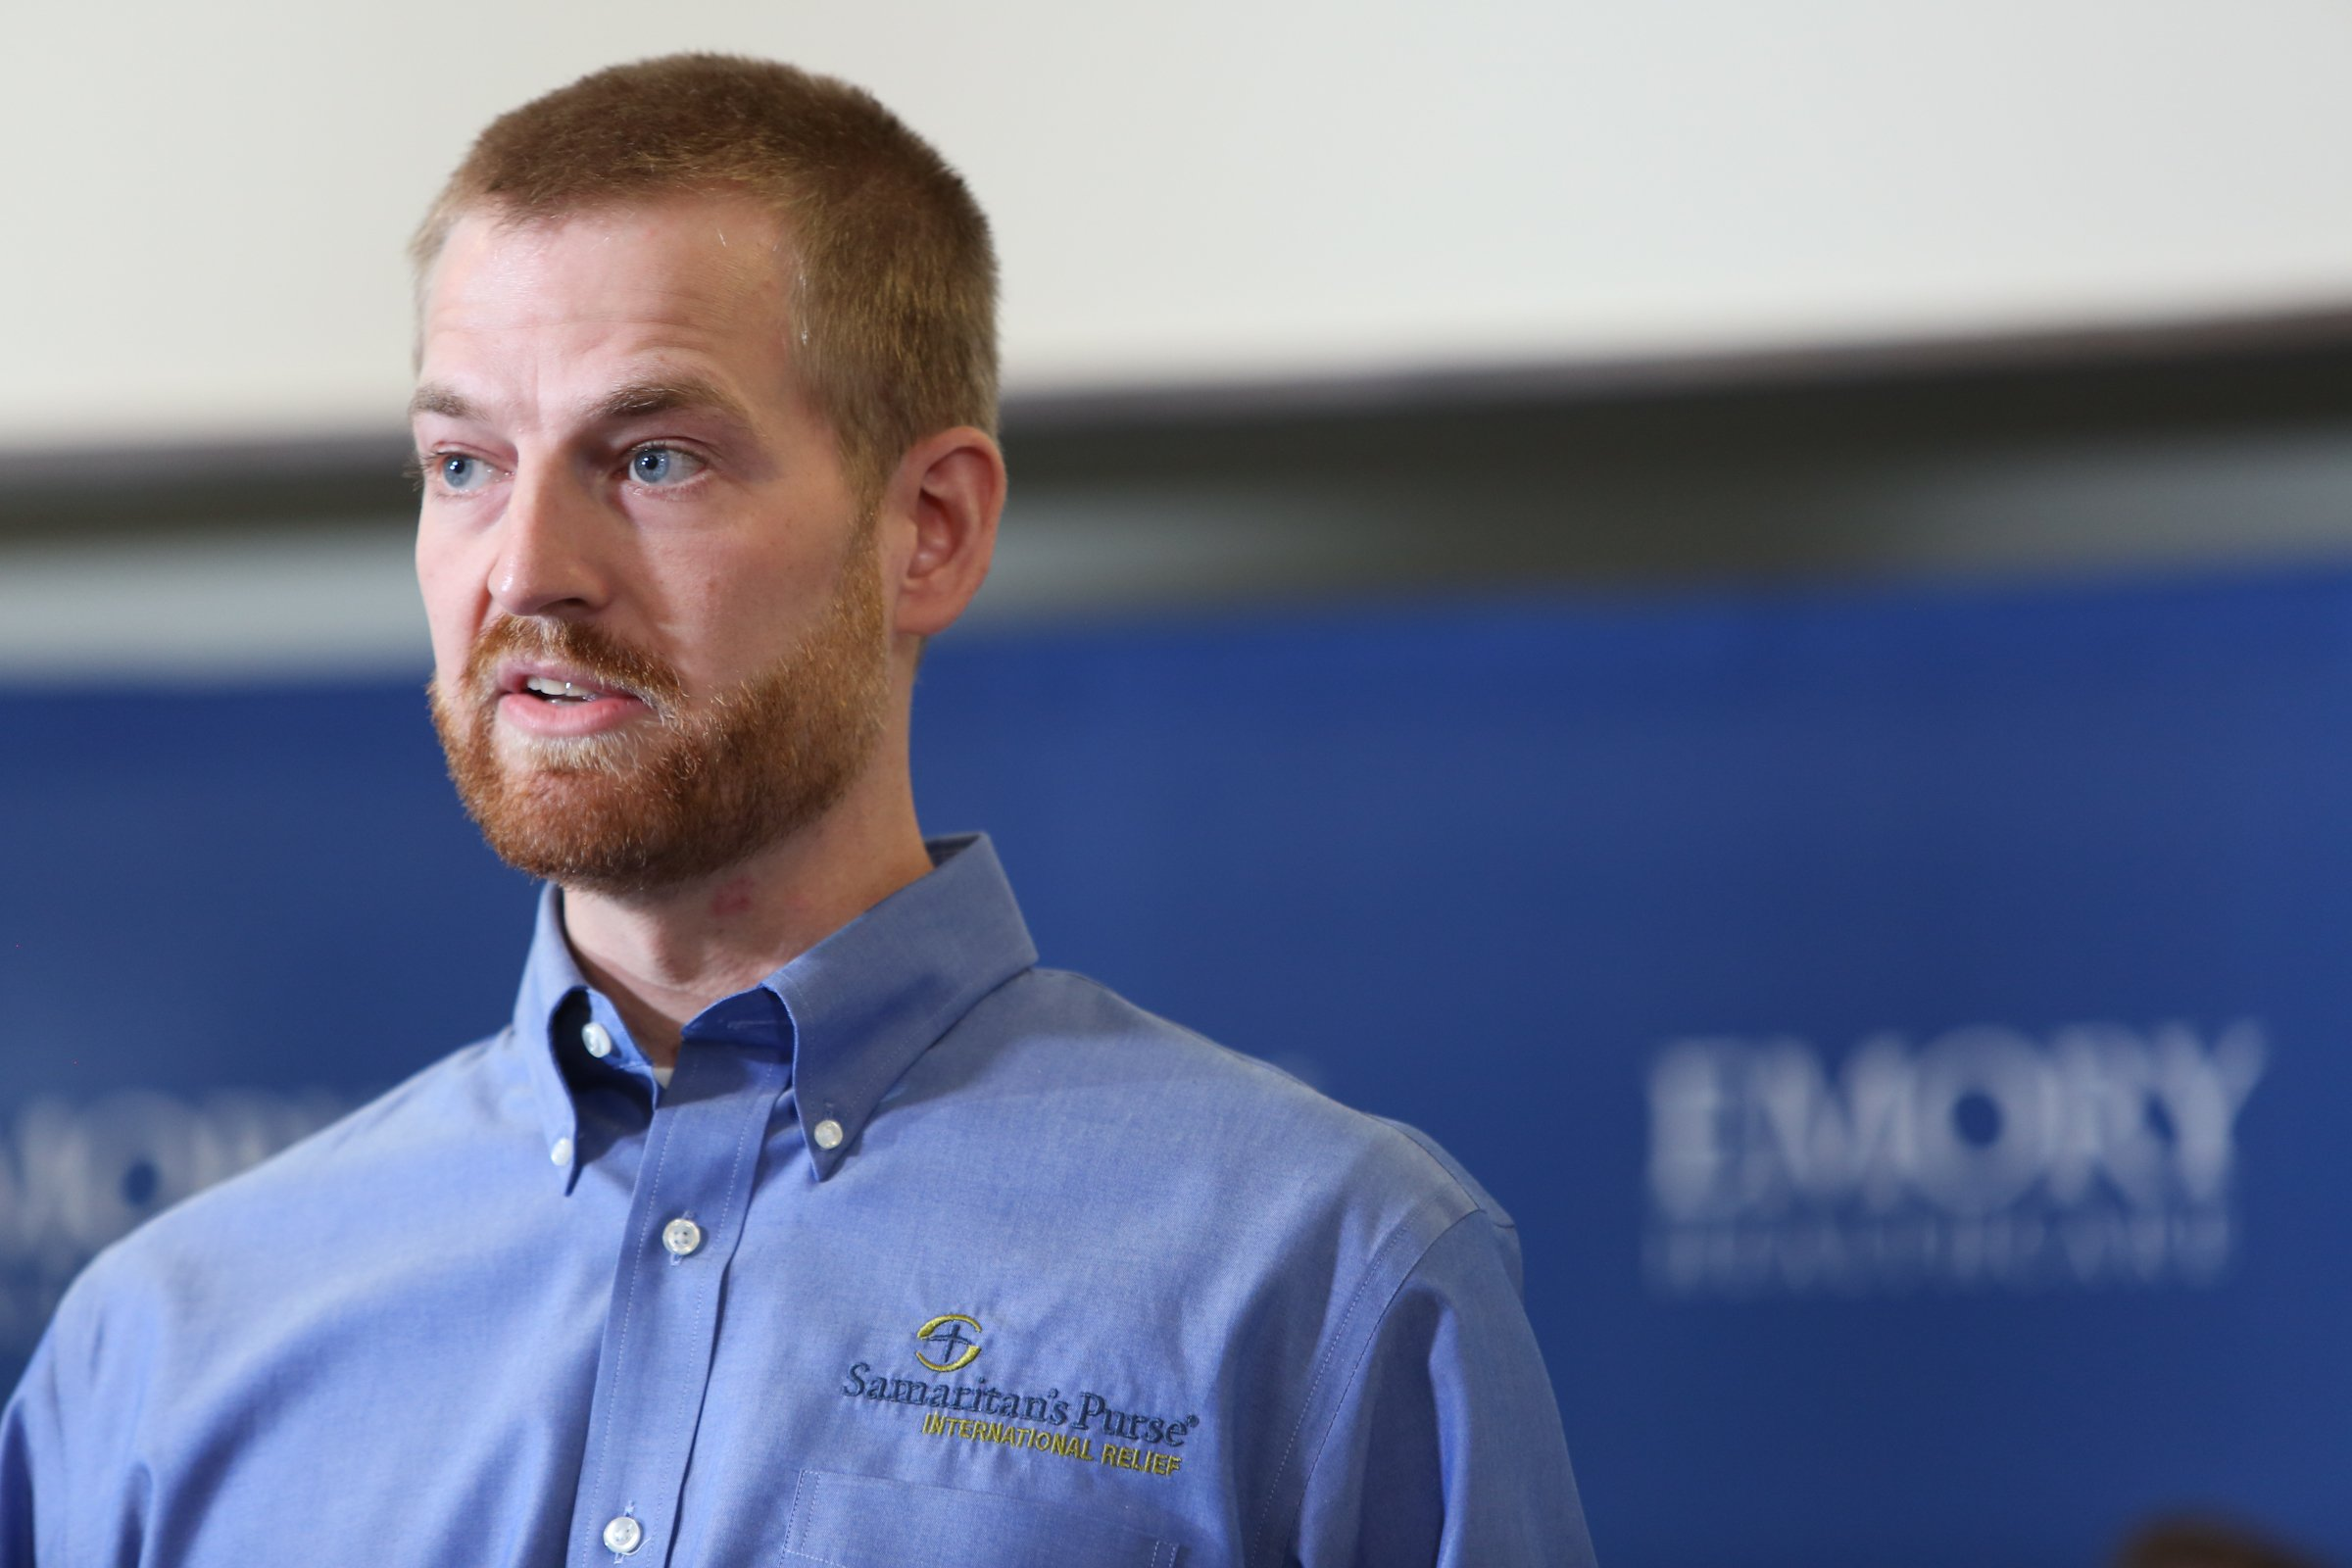 Dr. Kent Brantly speaks during a press conference announcing his release from Emory Hospital on Aug. 21, 2014 in Atlanta.